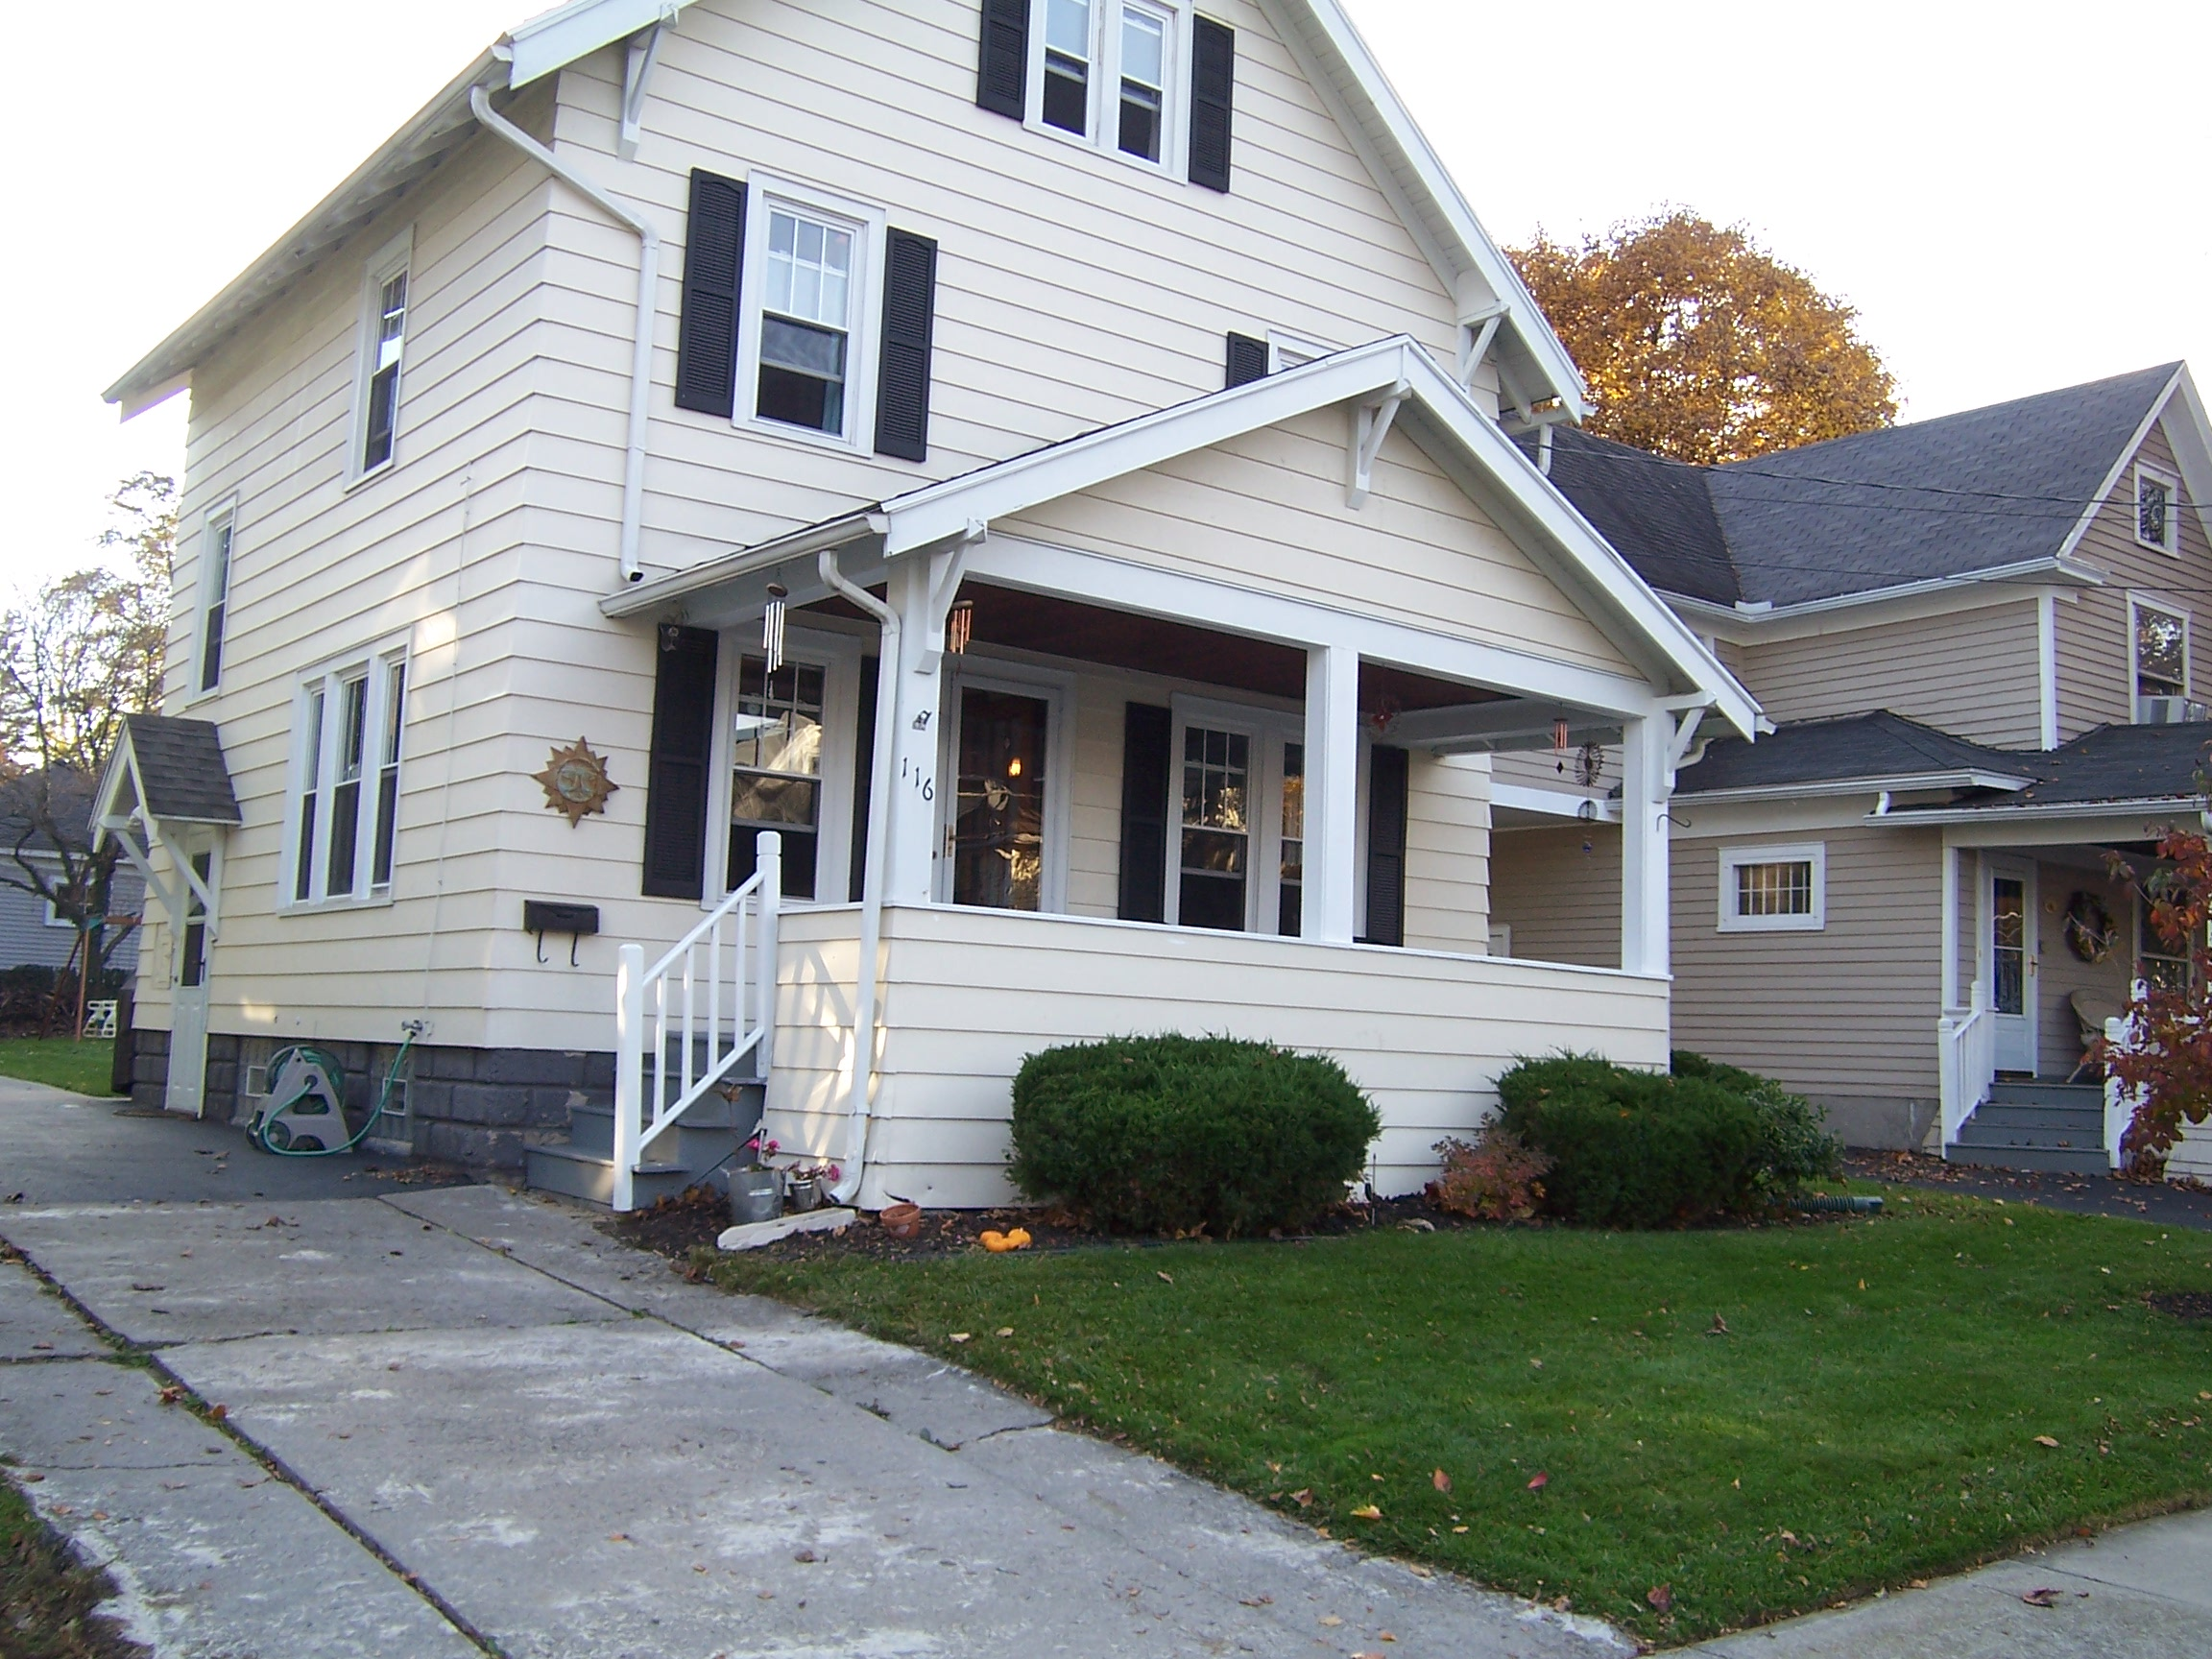 116 W. Spruce St., East Rochester, New York 14445